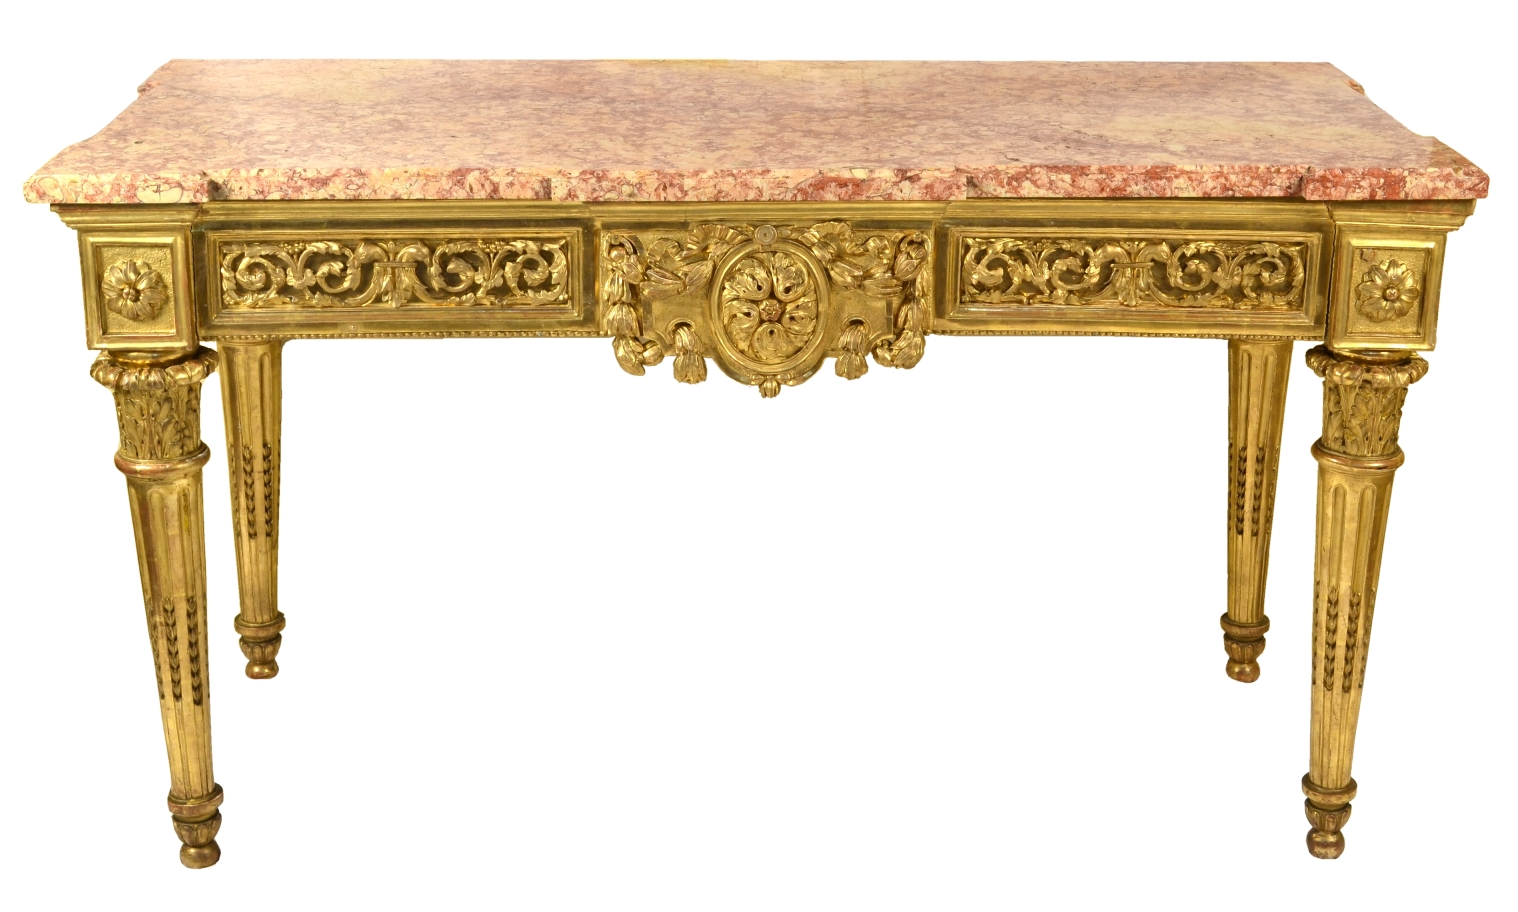 Fine Italian Carved and Giltwood Neoclassical Console Table, c.1790